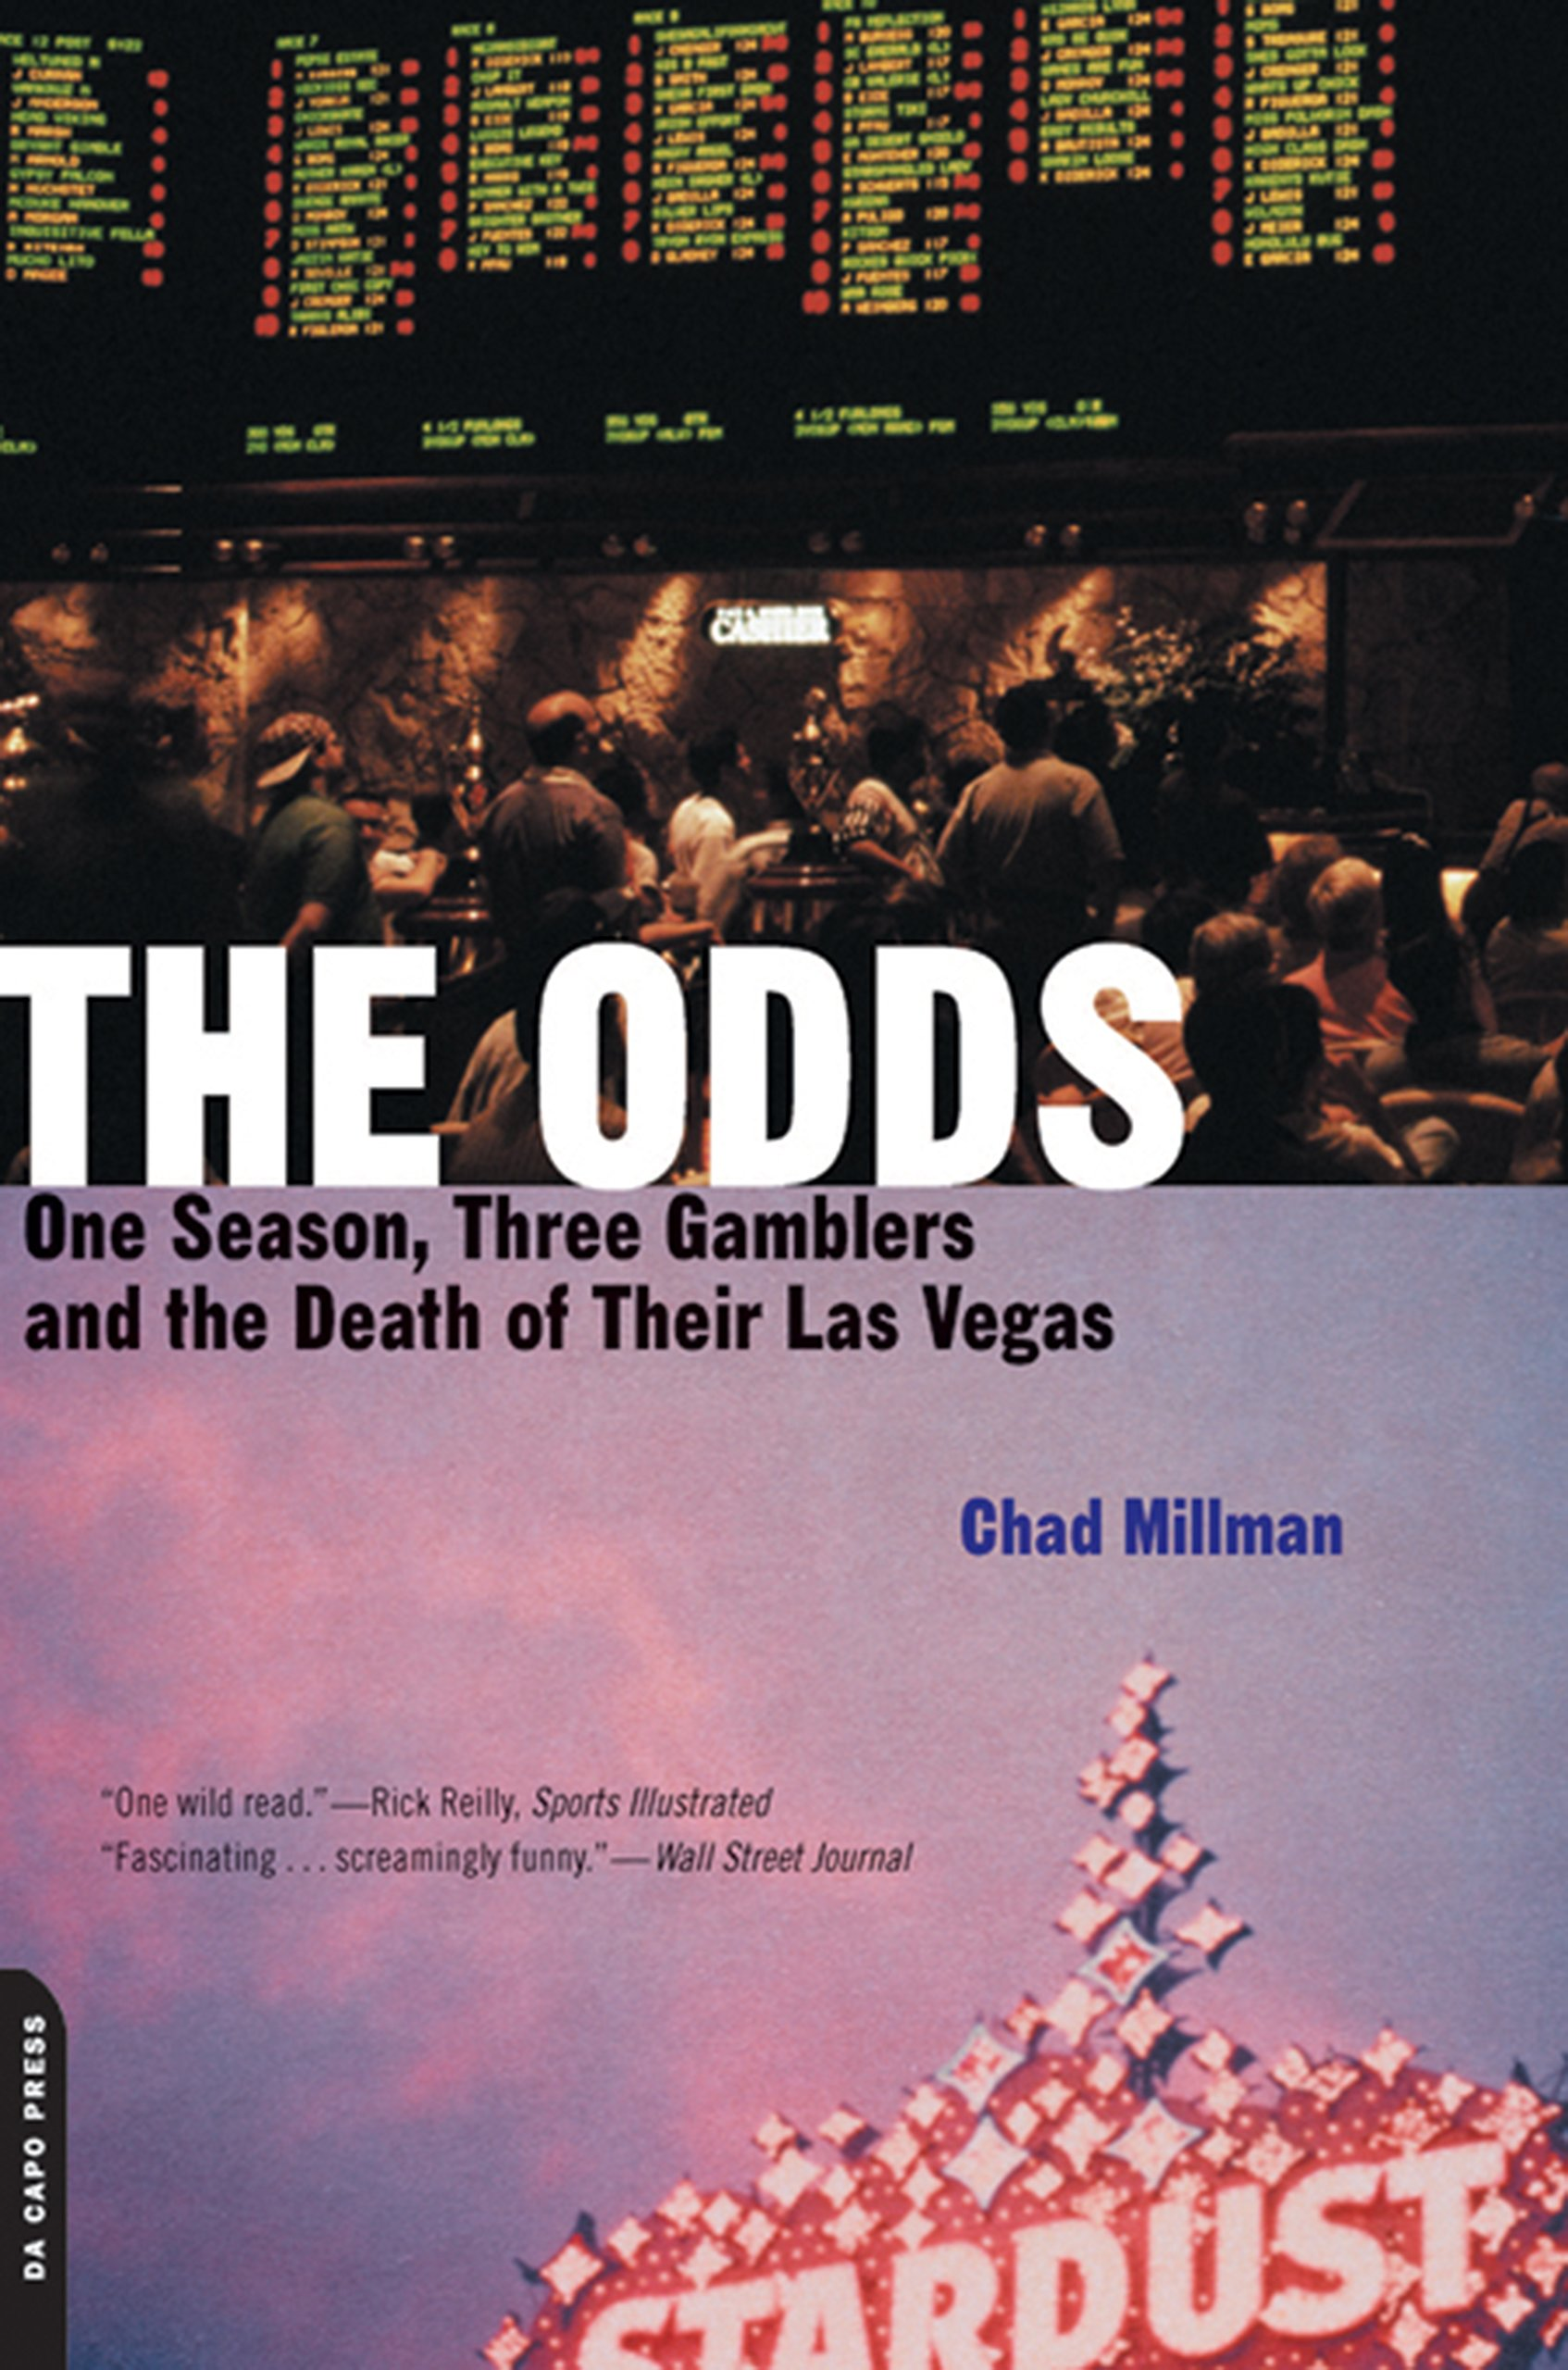 Image OfThe Odds: One Season, Three Gamblers And The Death Of Their Las Vegas